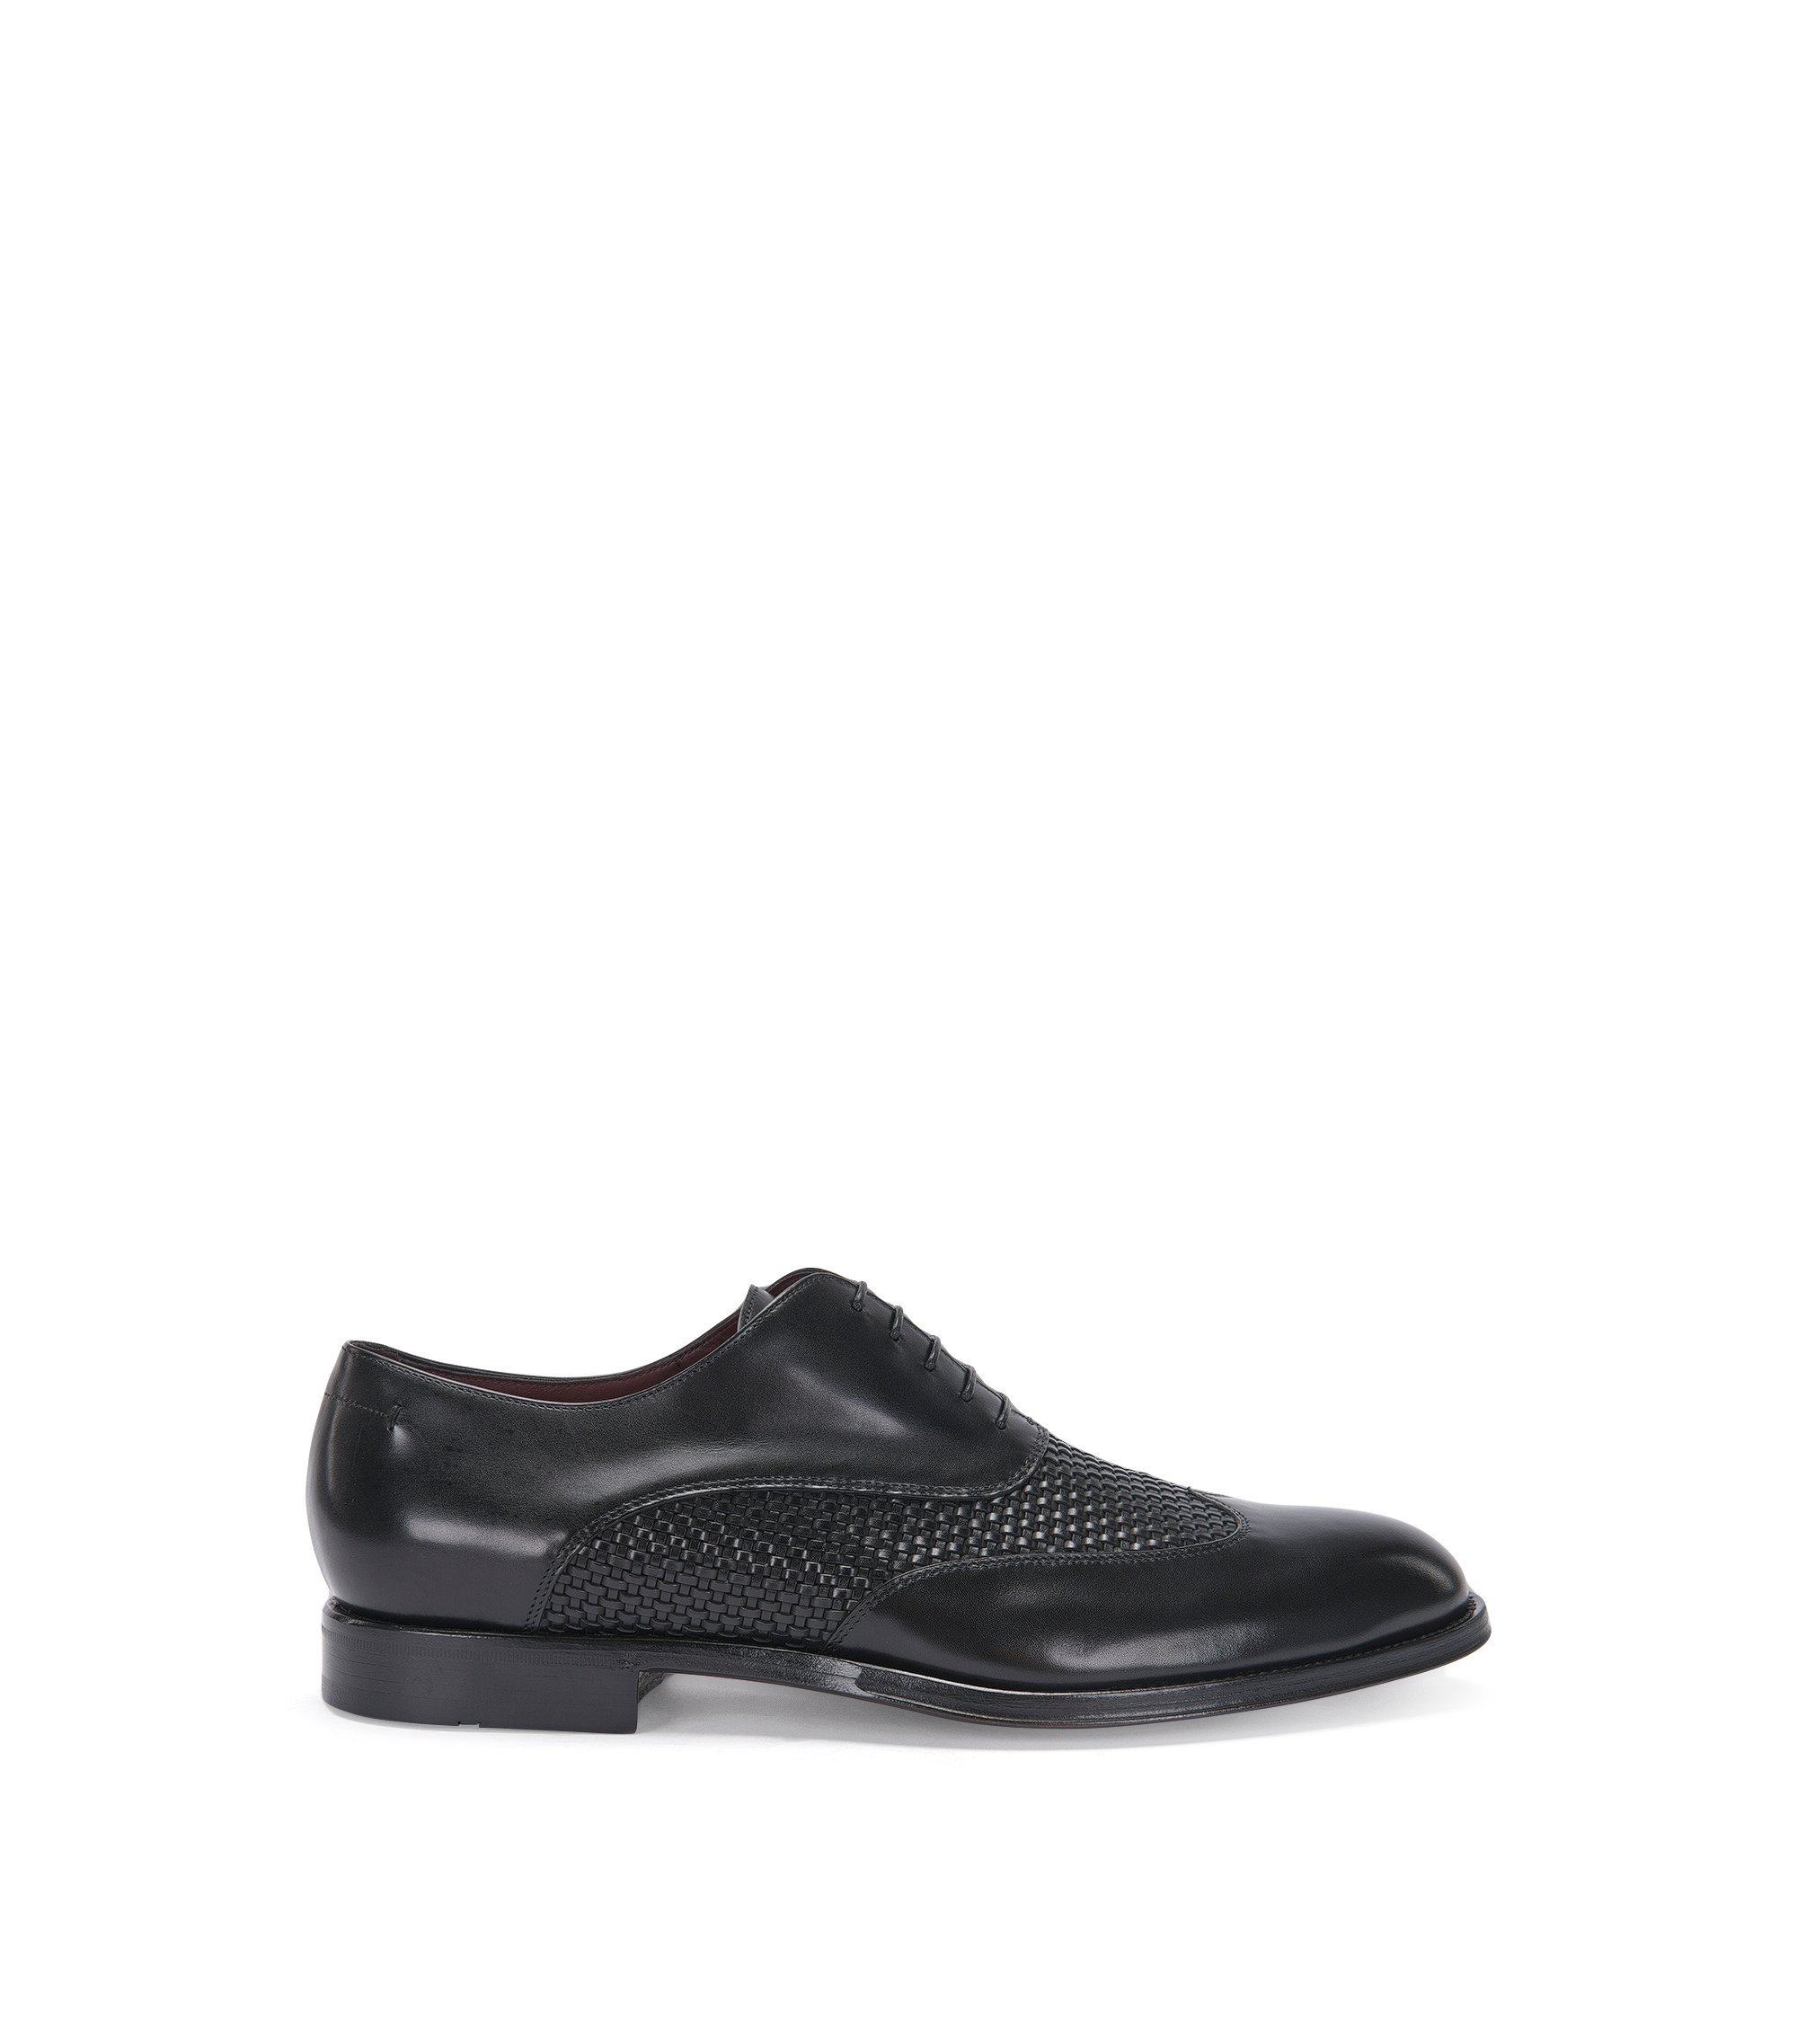 Italian Calfskin Woven Wingtip Oxford Shoe | T-Idol Oxfr Wowt, Black